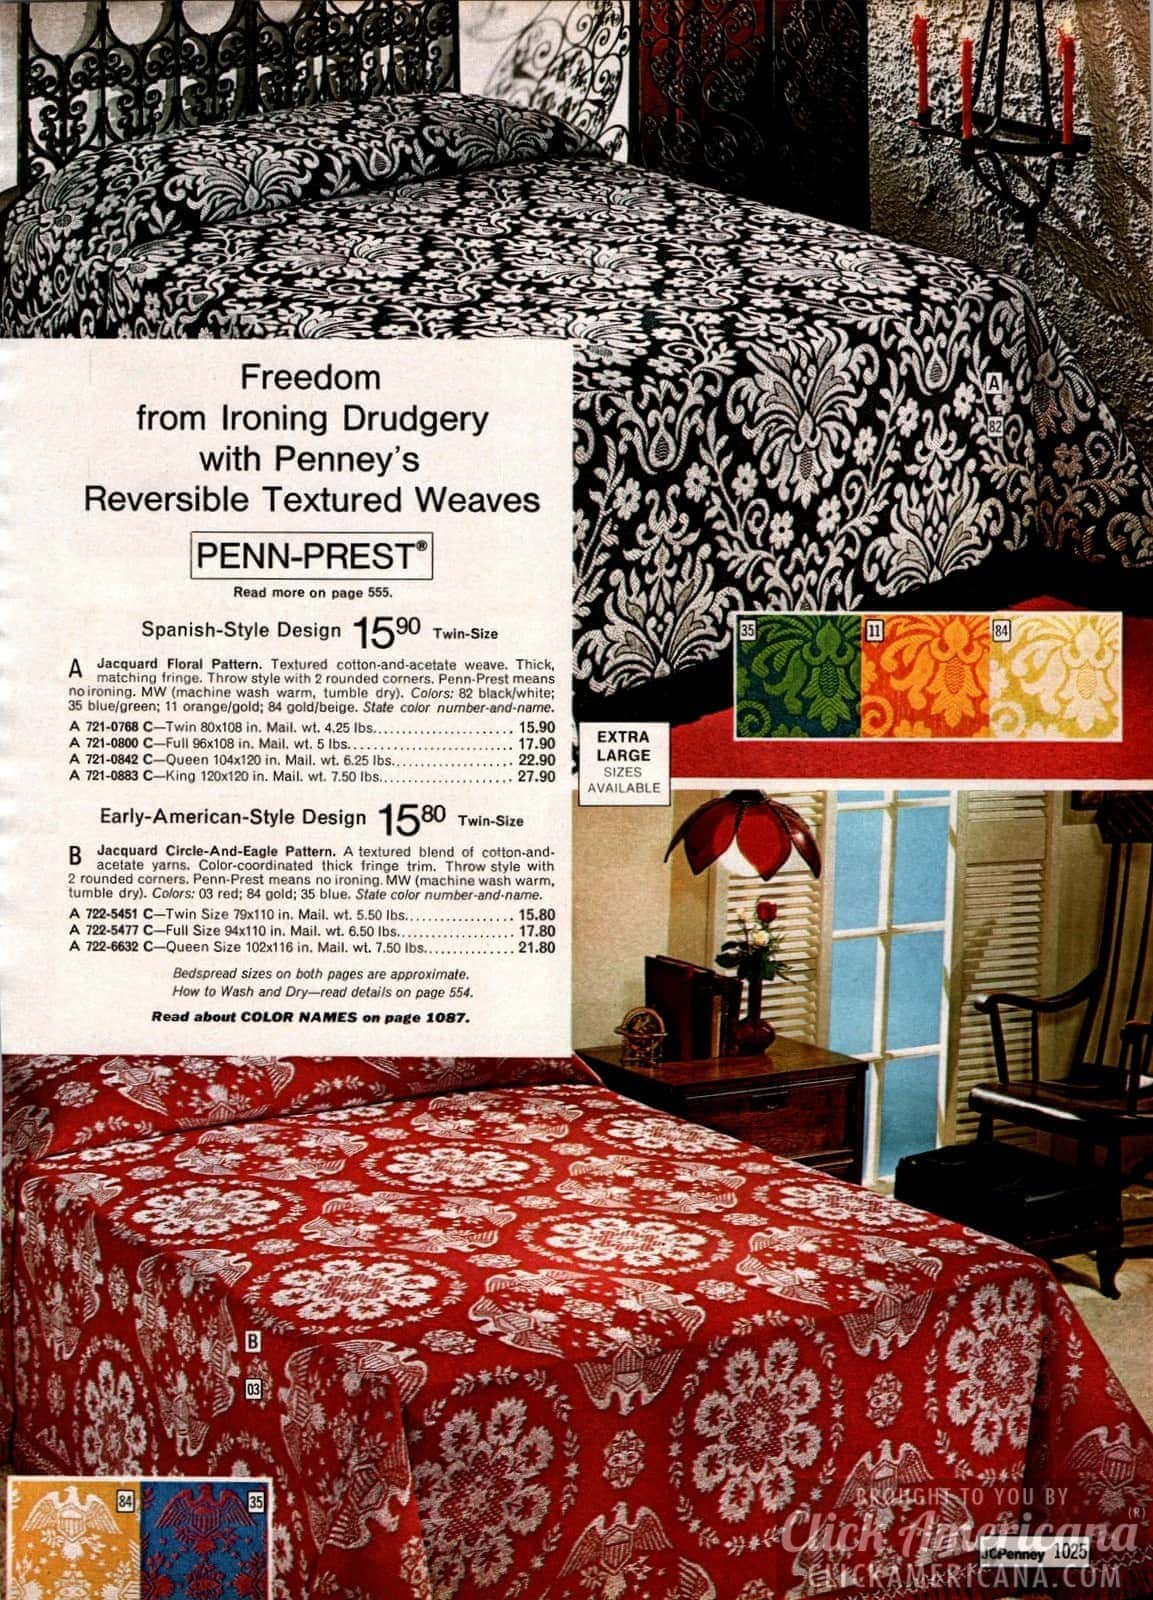 Spanish-style and early-American-style designs on retro bedding